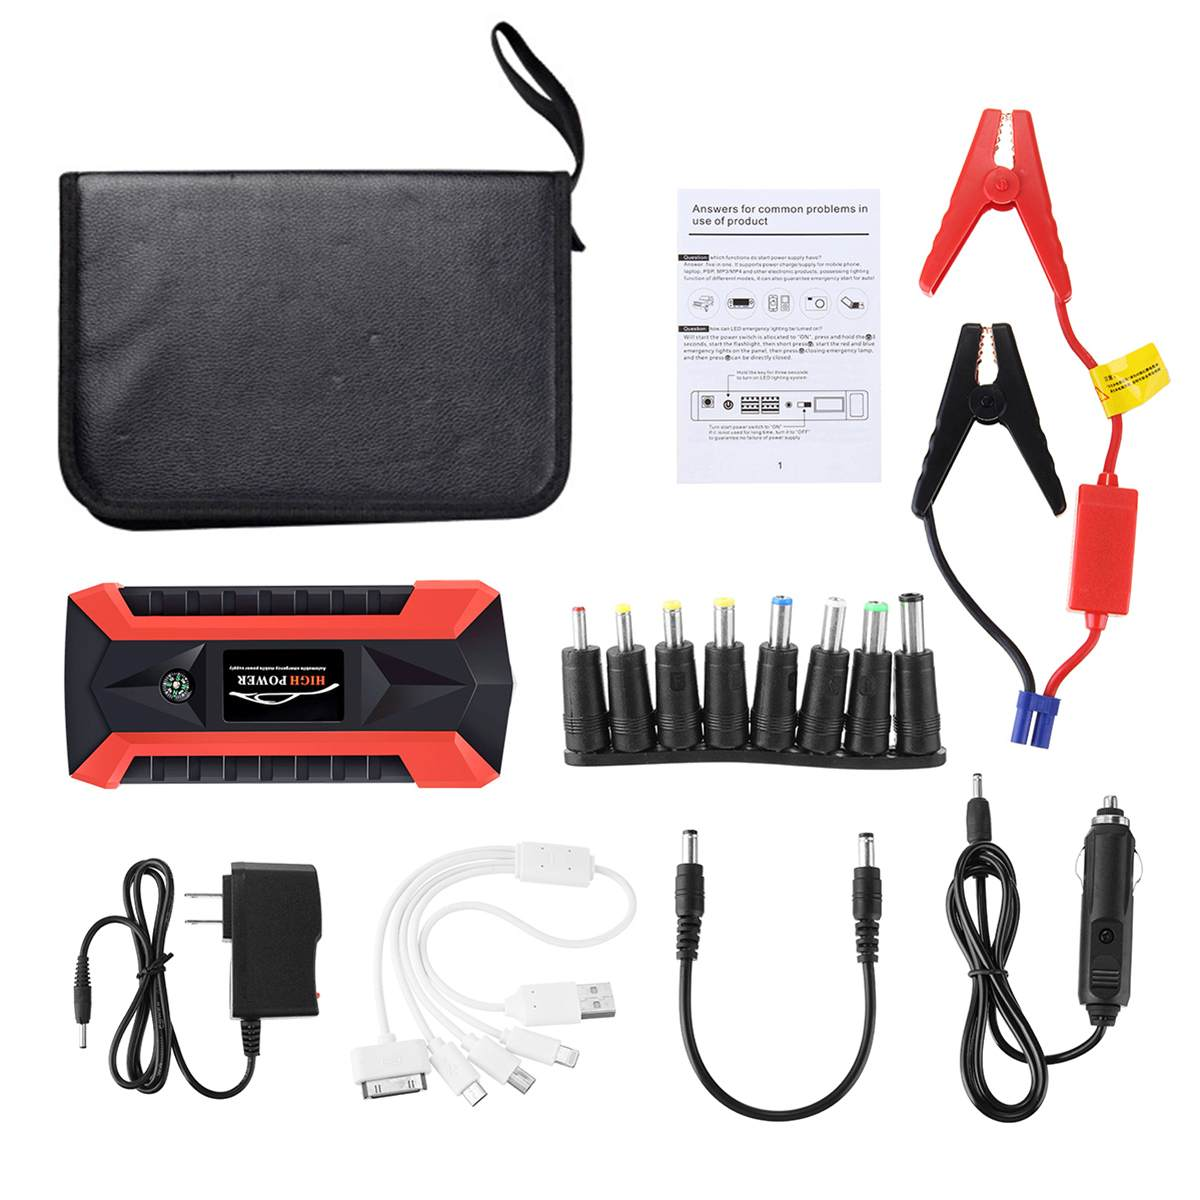 89800mAh 4USB Car Jump Starter Multifunction Emergency Charger Battery Power Bank Pack Booster 12V Starting Device Waterproof multifunction jump starter 89800mah 12v 4usb 600a portable car battery booster charger booster power bank starting device